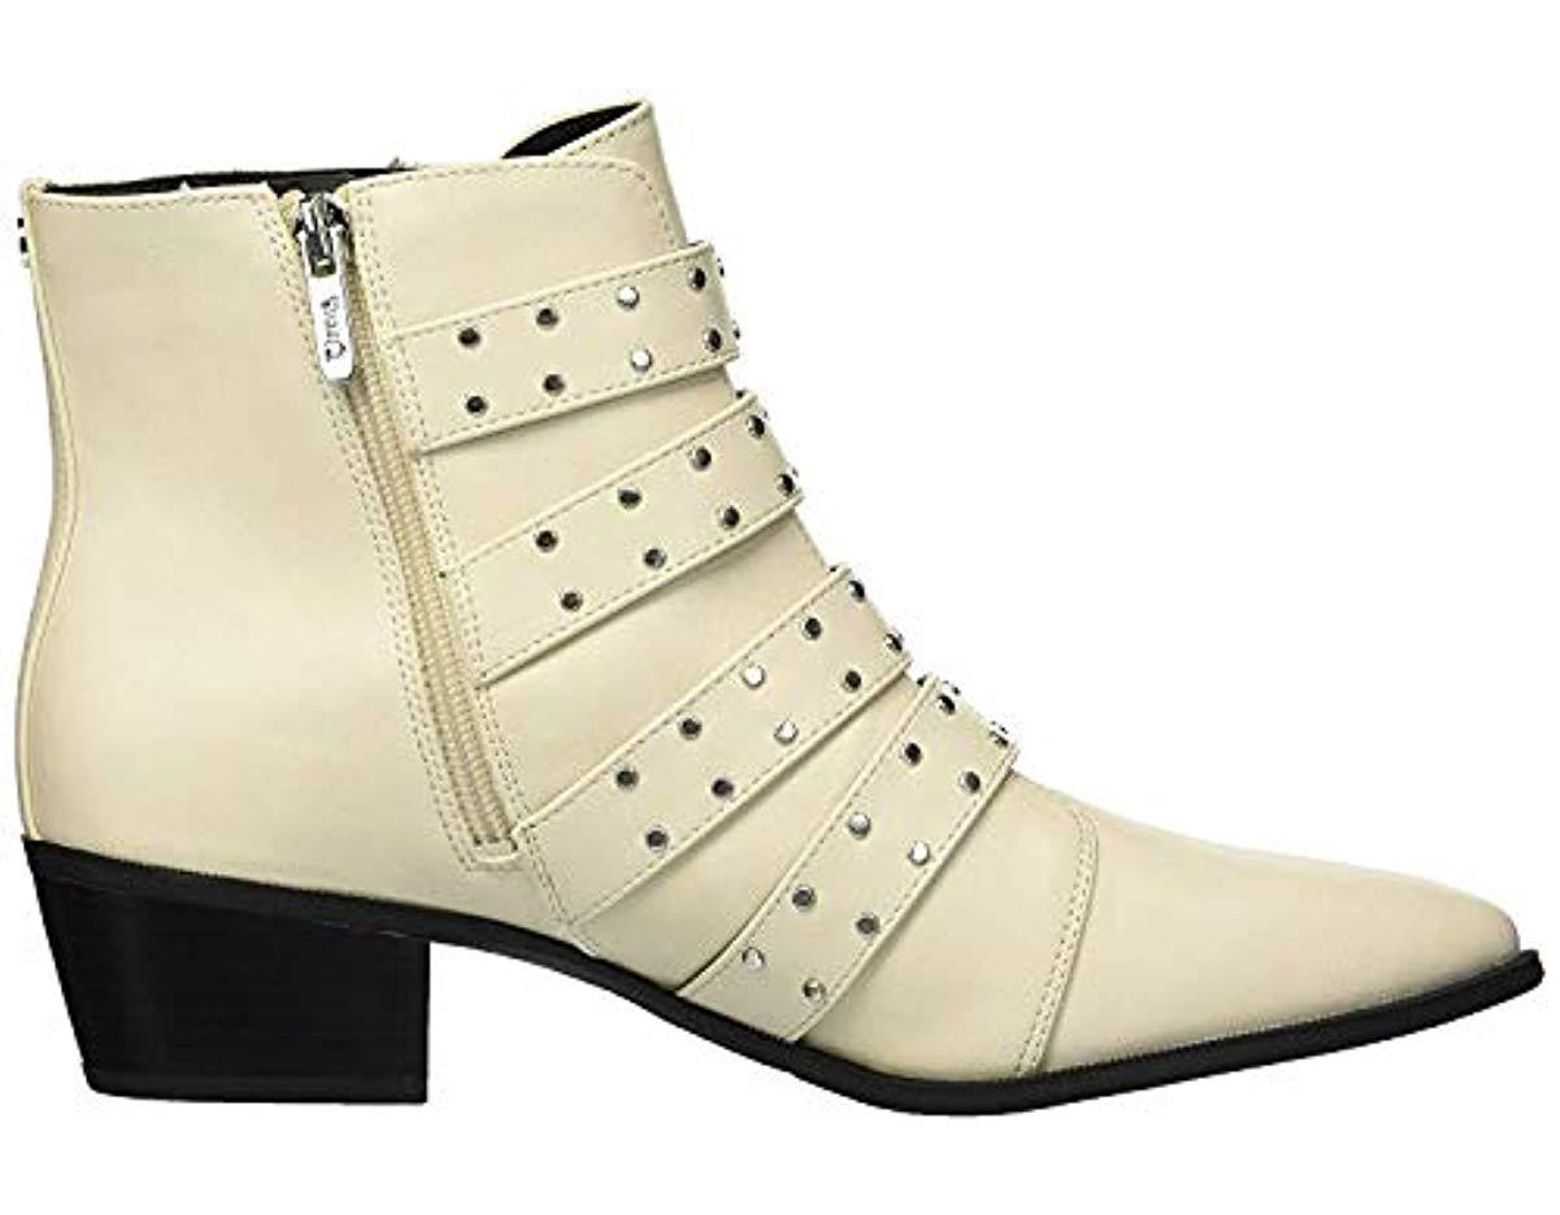 c4a2553727c3f Circus by Sam Edelman Hutton Fashion Boot in Natural - Save 51% - Lyst